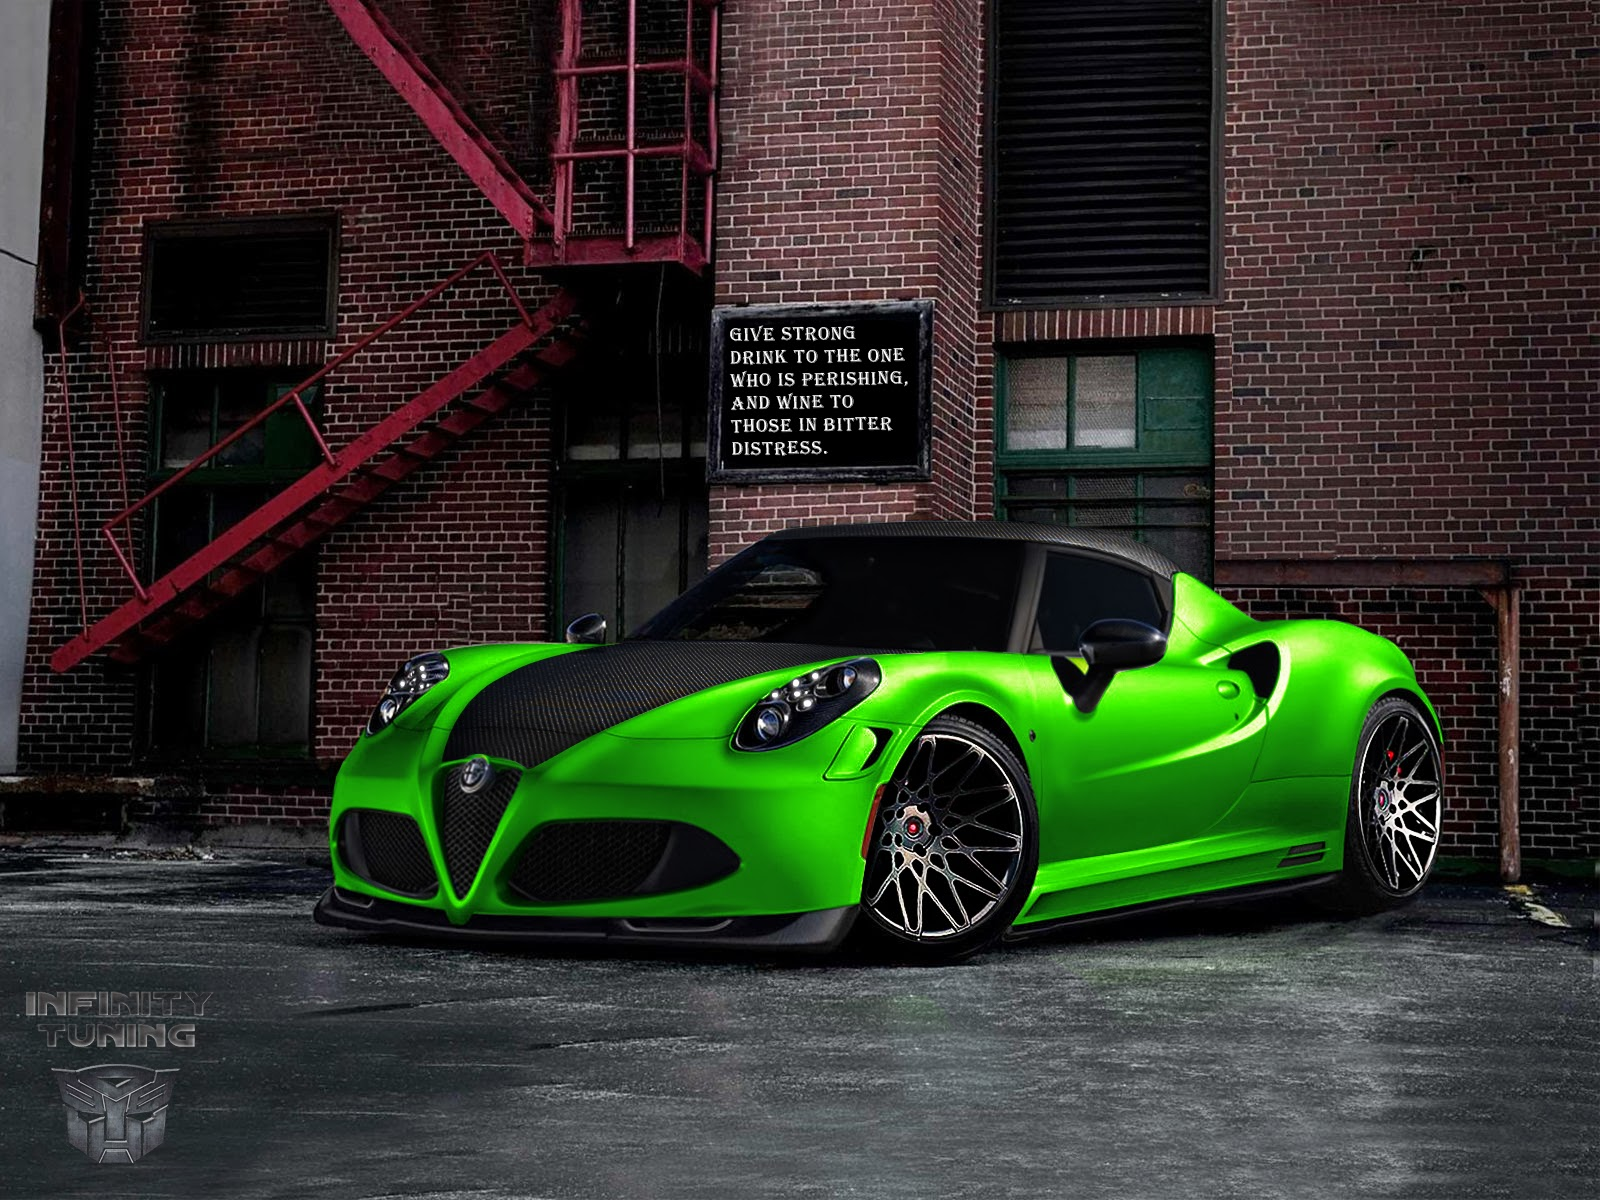 alfa romeo 4c by infinity tuning infinity tuning blog. Black Bedroom Furniture Sets. Home Design Ideas